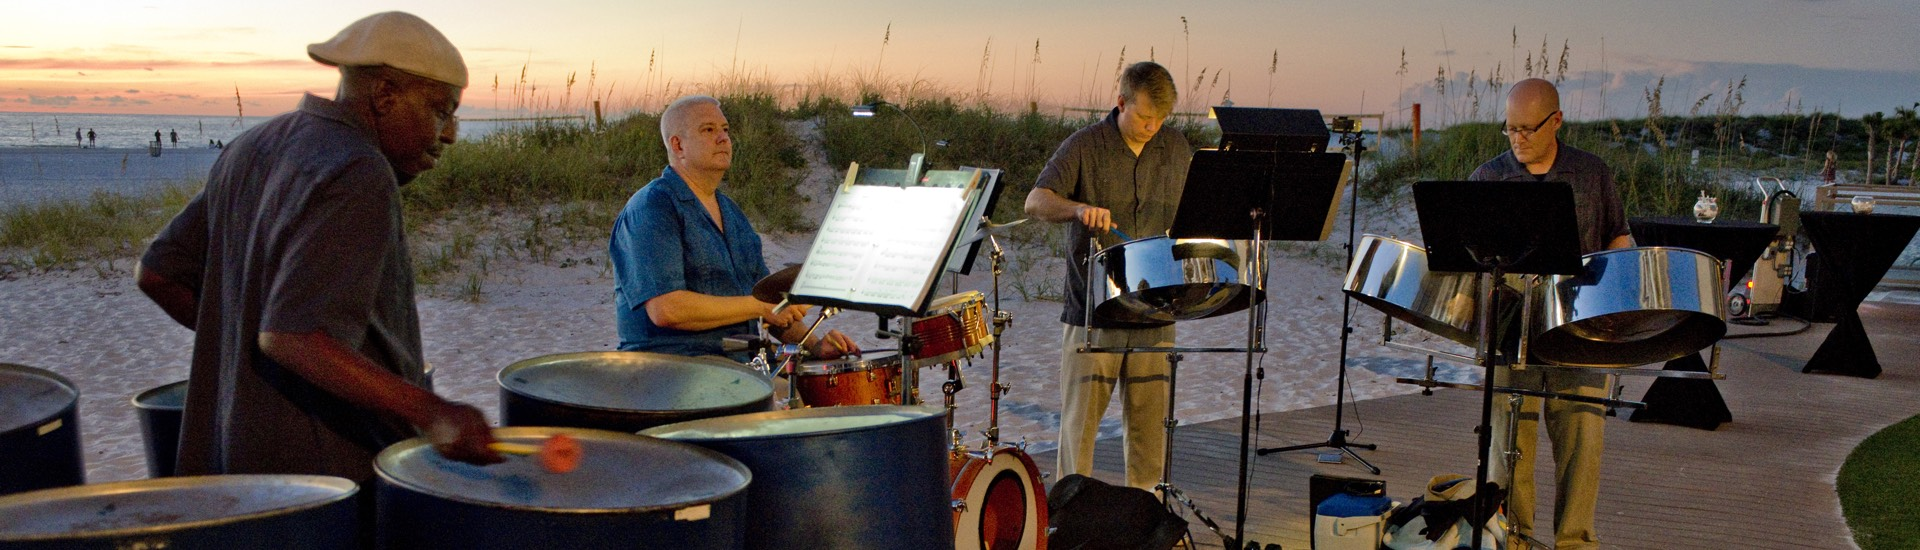 Caladesi Steel Band - Steel Drum Band Quartet Sandpearl